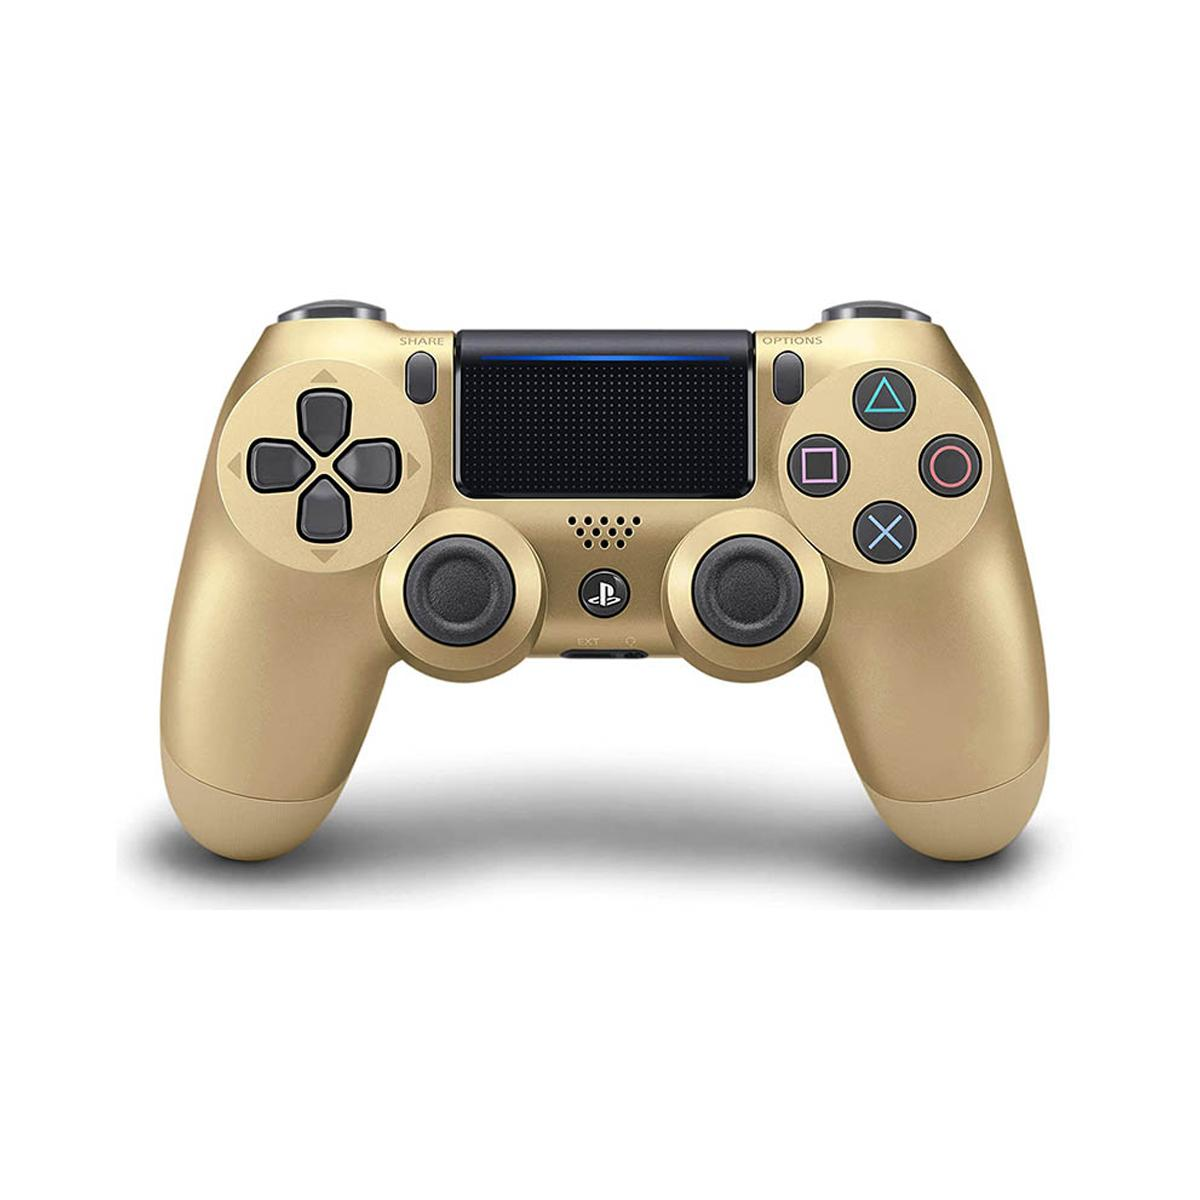 Sony PS4 Wireless Controller - Gold